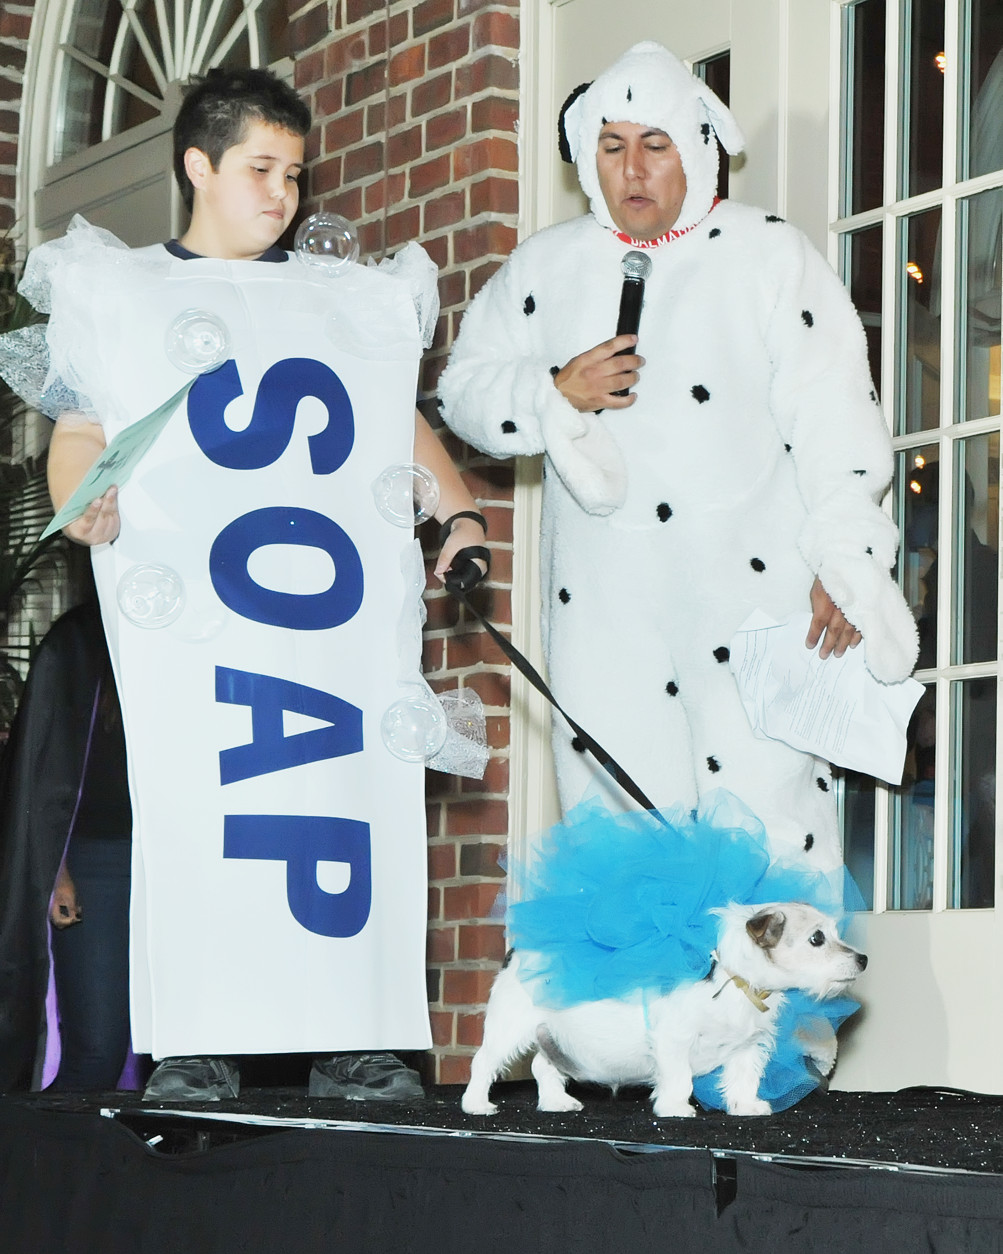 Gunner and his dog, Snuggles, dressed as a loofah. (Shannon Finney Photography)